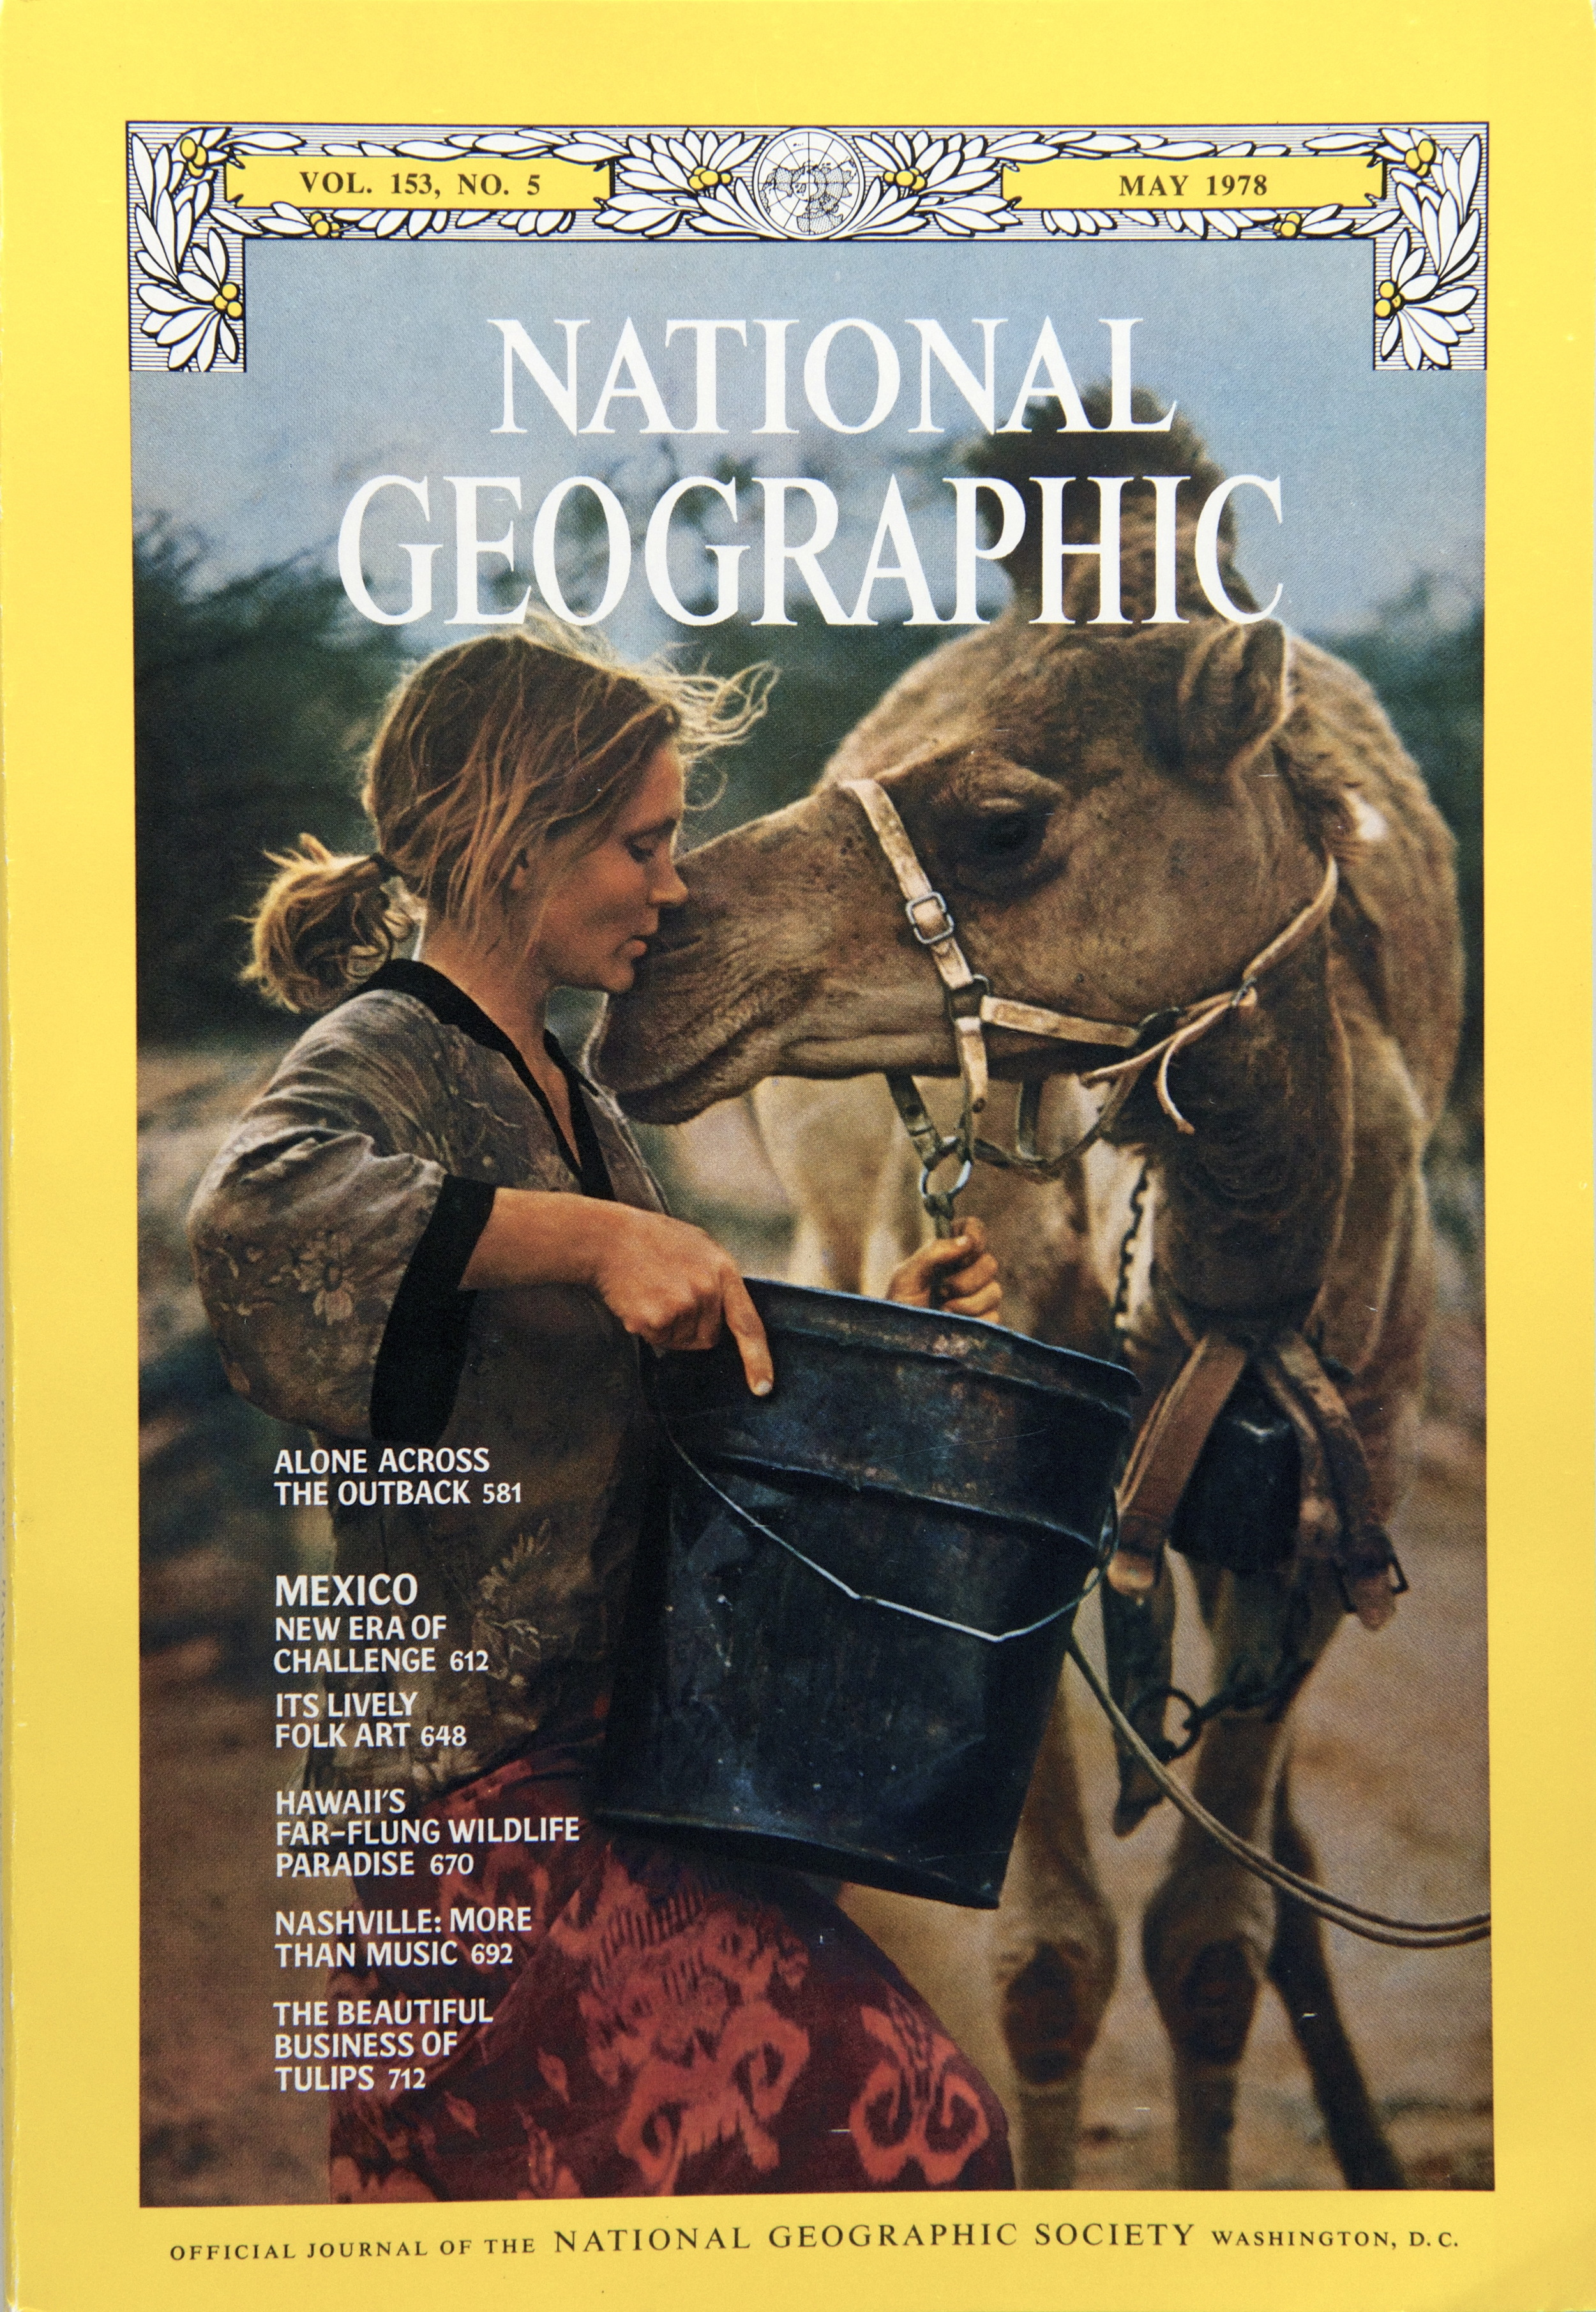 When National Geographic's cover story about Robyn's camel trek was published, it became one of the most popular in the magazine's history. The story was subsequently featured on the covers of more than 100 other magazines in 35 countries reaching an estimated 50 million   readers.    ©  National Geographic.